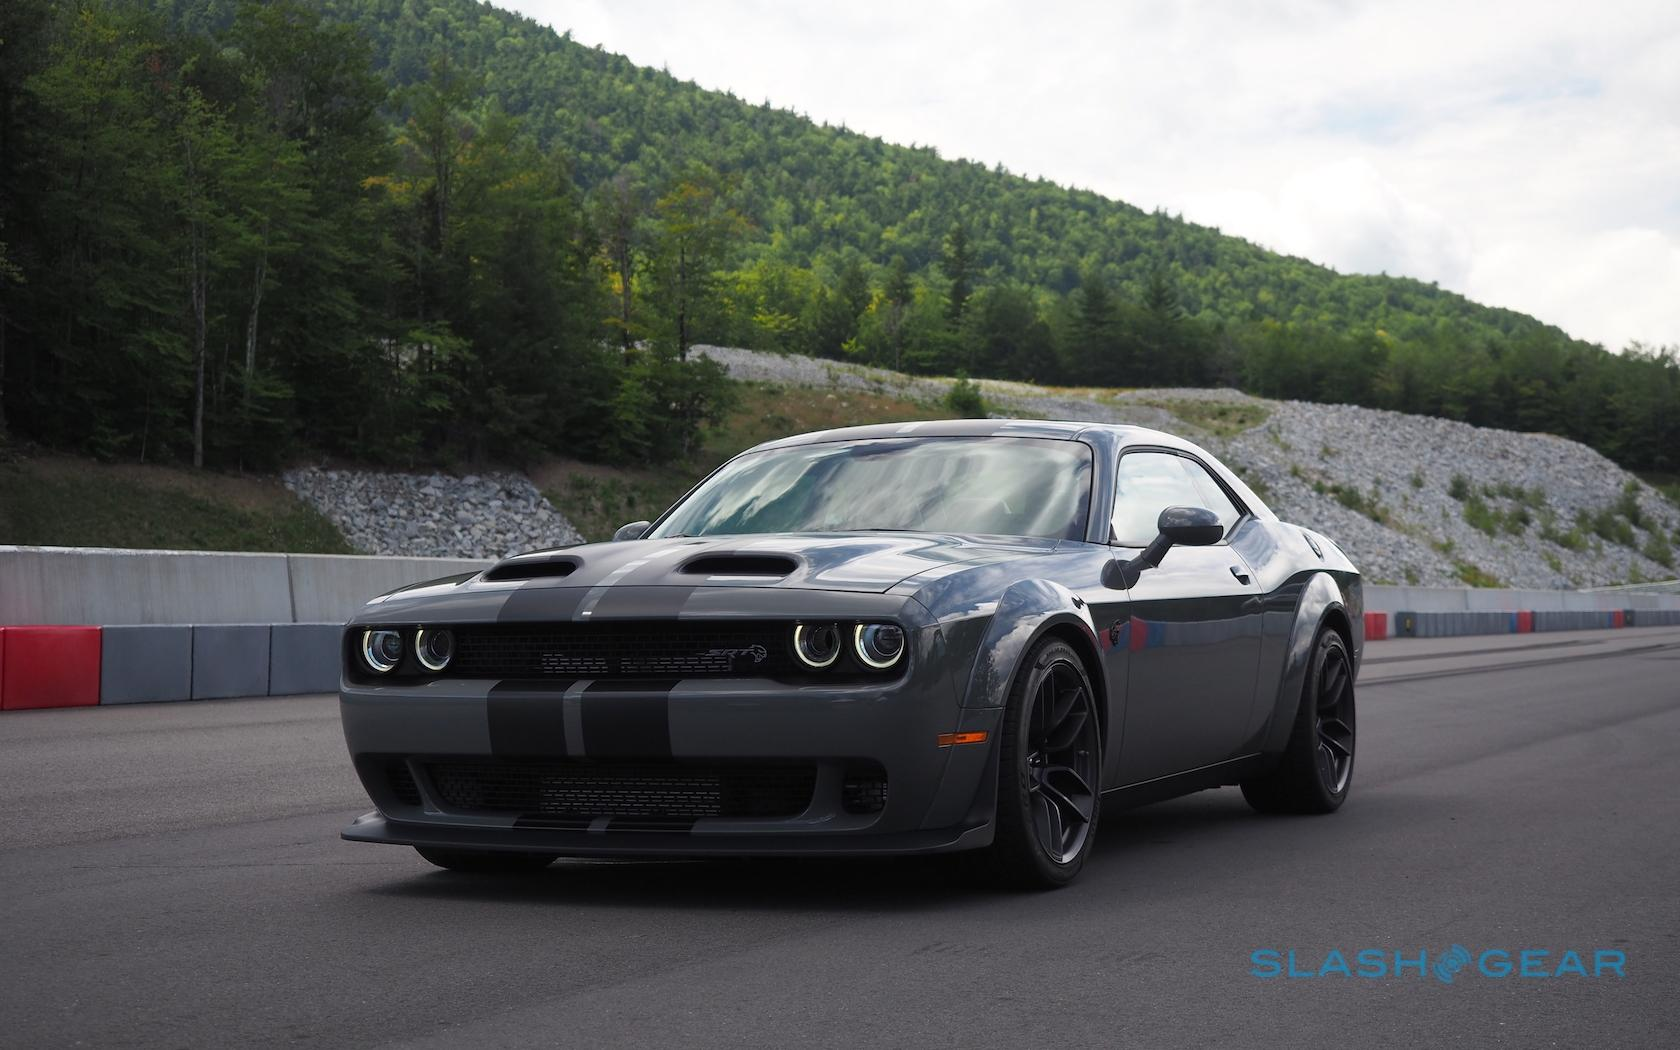 2019 Dodge Challenger Hellcat Redeye First Drive 797hp Bragging Rights Slashgear